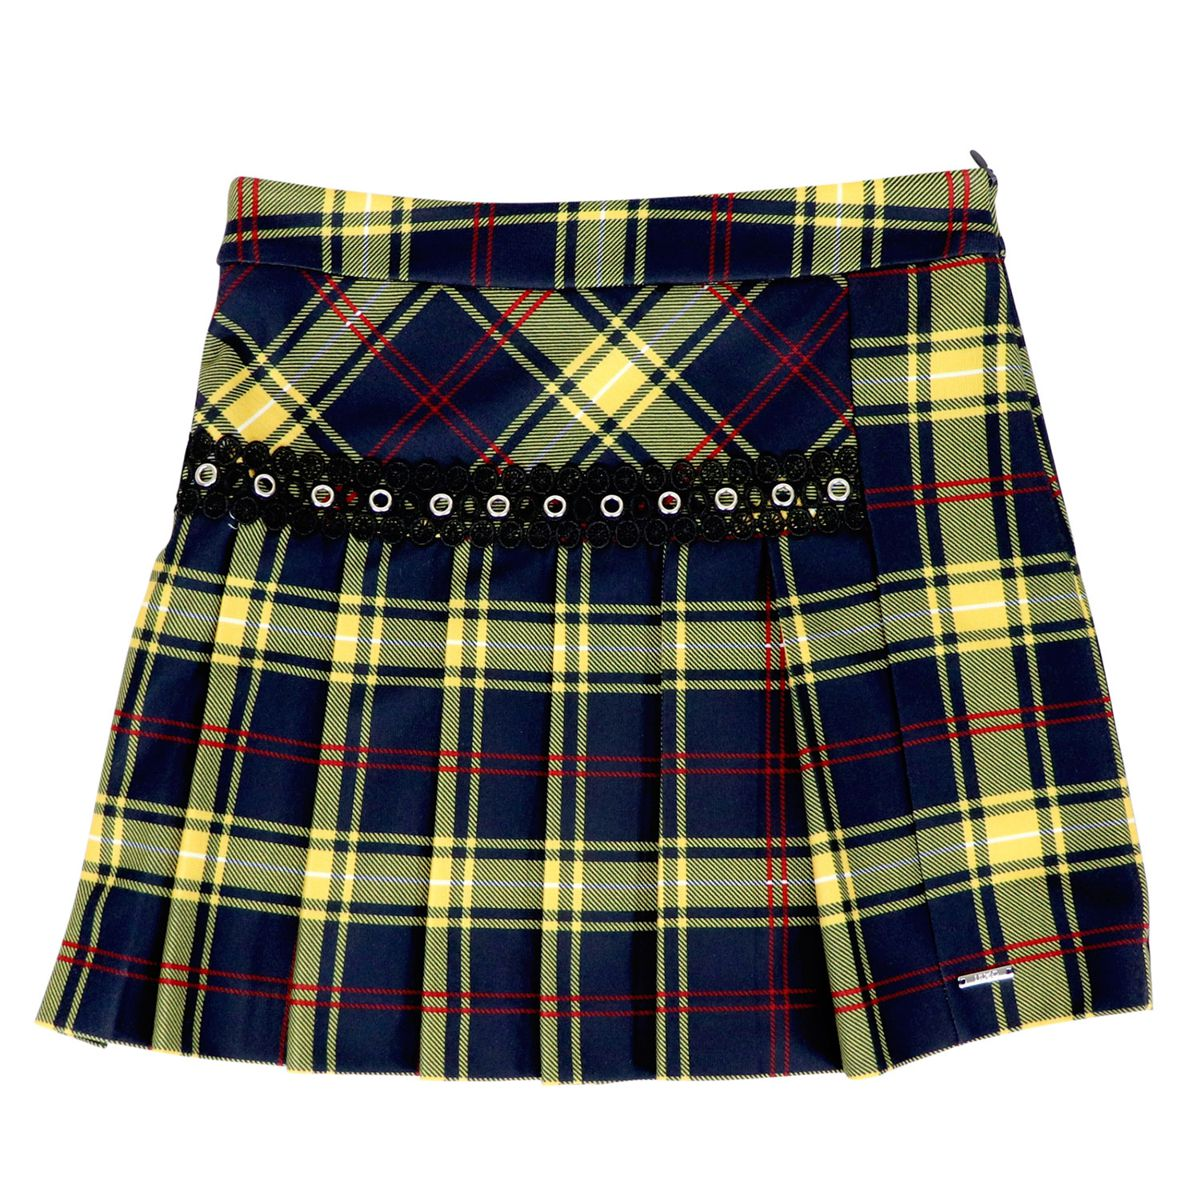 Scottish patterned pleated skirt Blue check Liu Jo